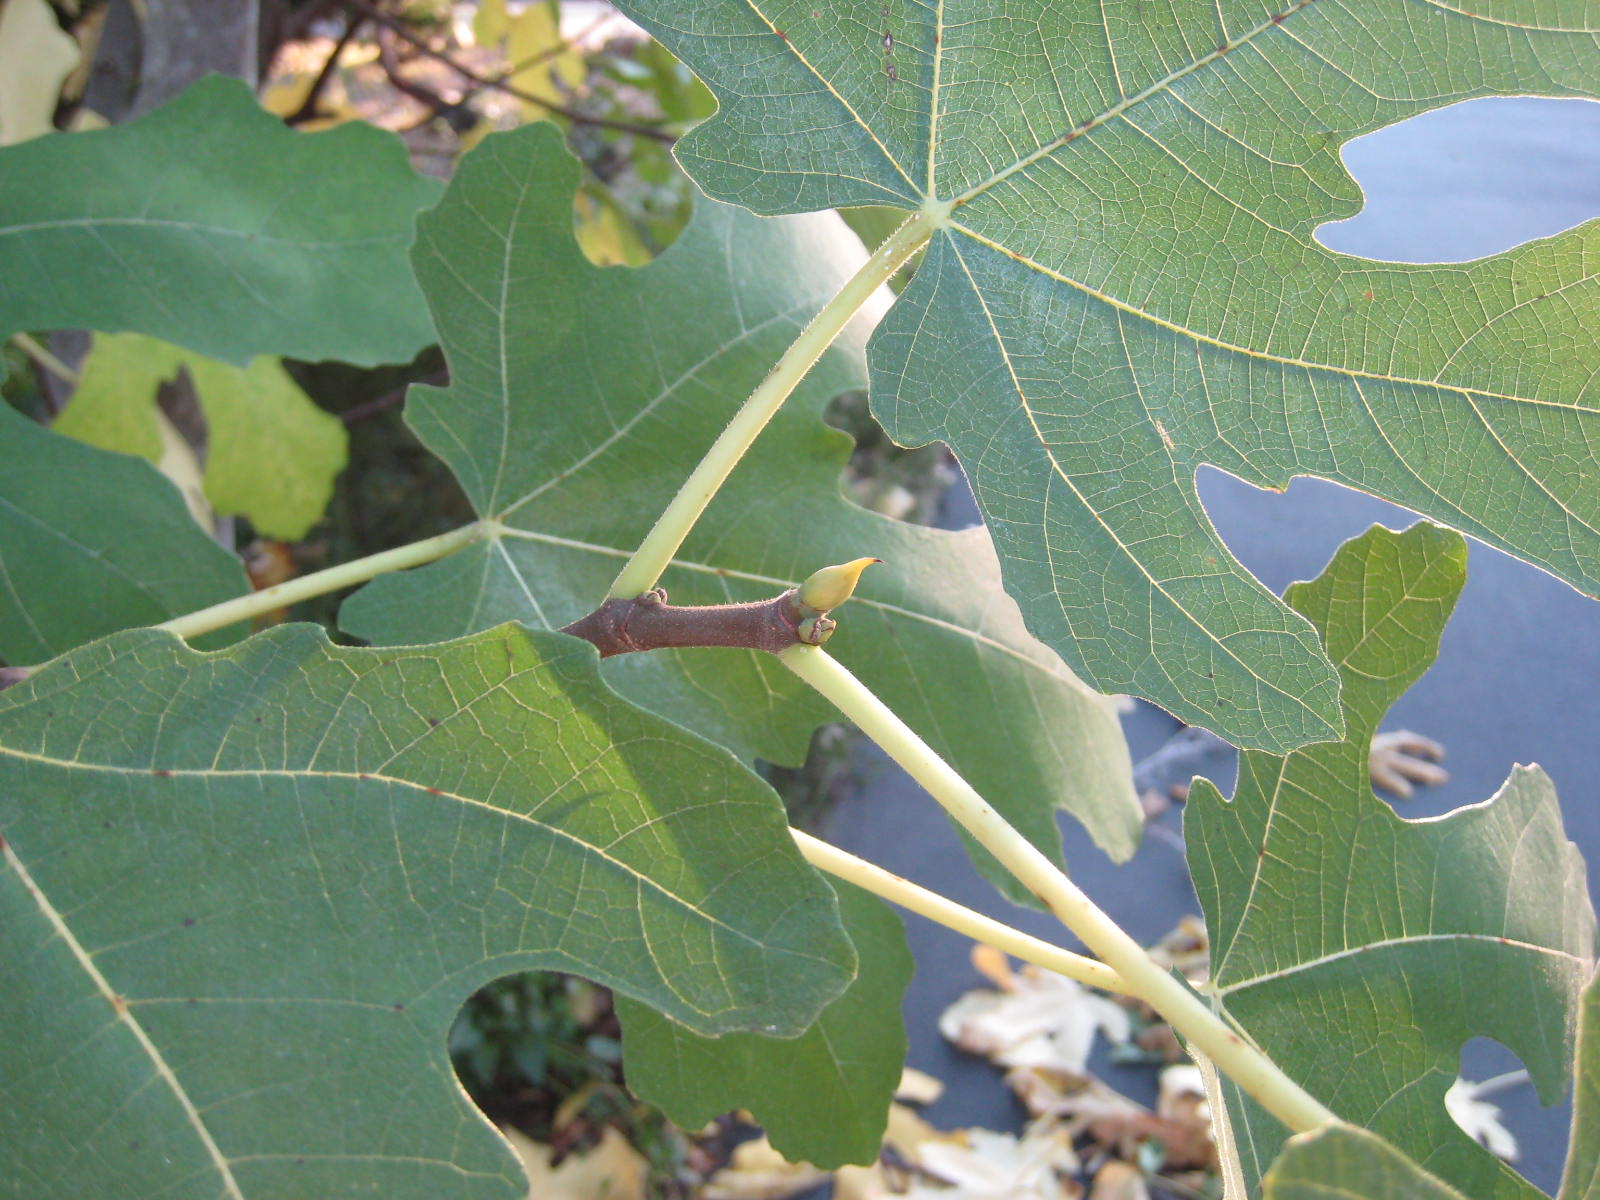 Charming How To Prune A Fig Tree Plant Lady How To Prune A Fig Tree Australia How To Prune A Fig Tree Plant houzz 01 How To Prune A Fig Tree